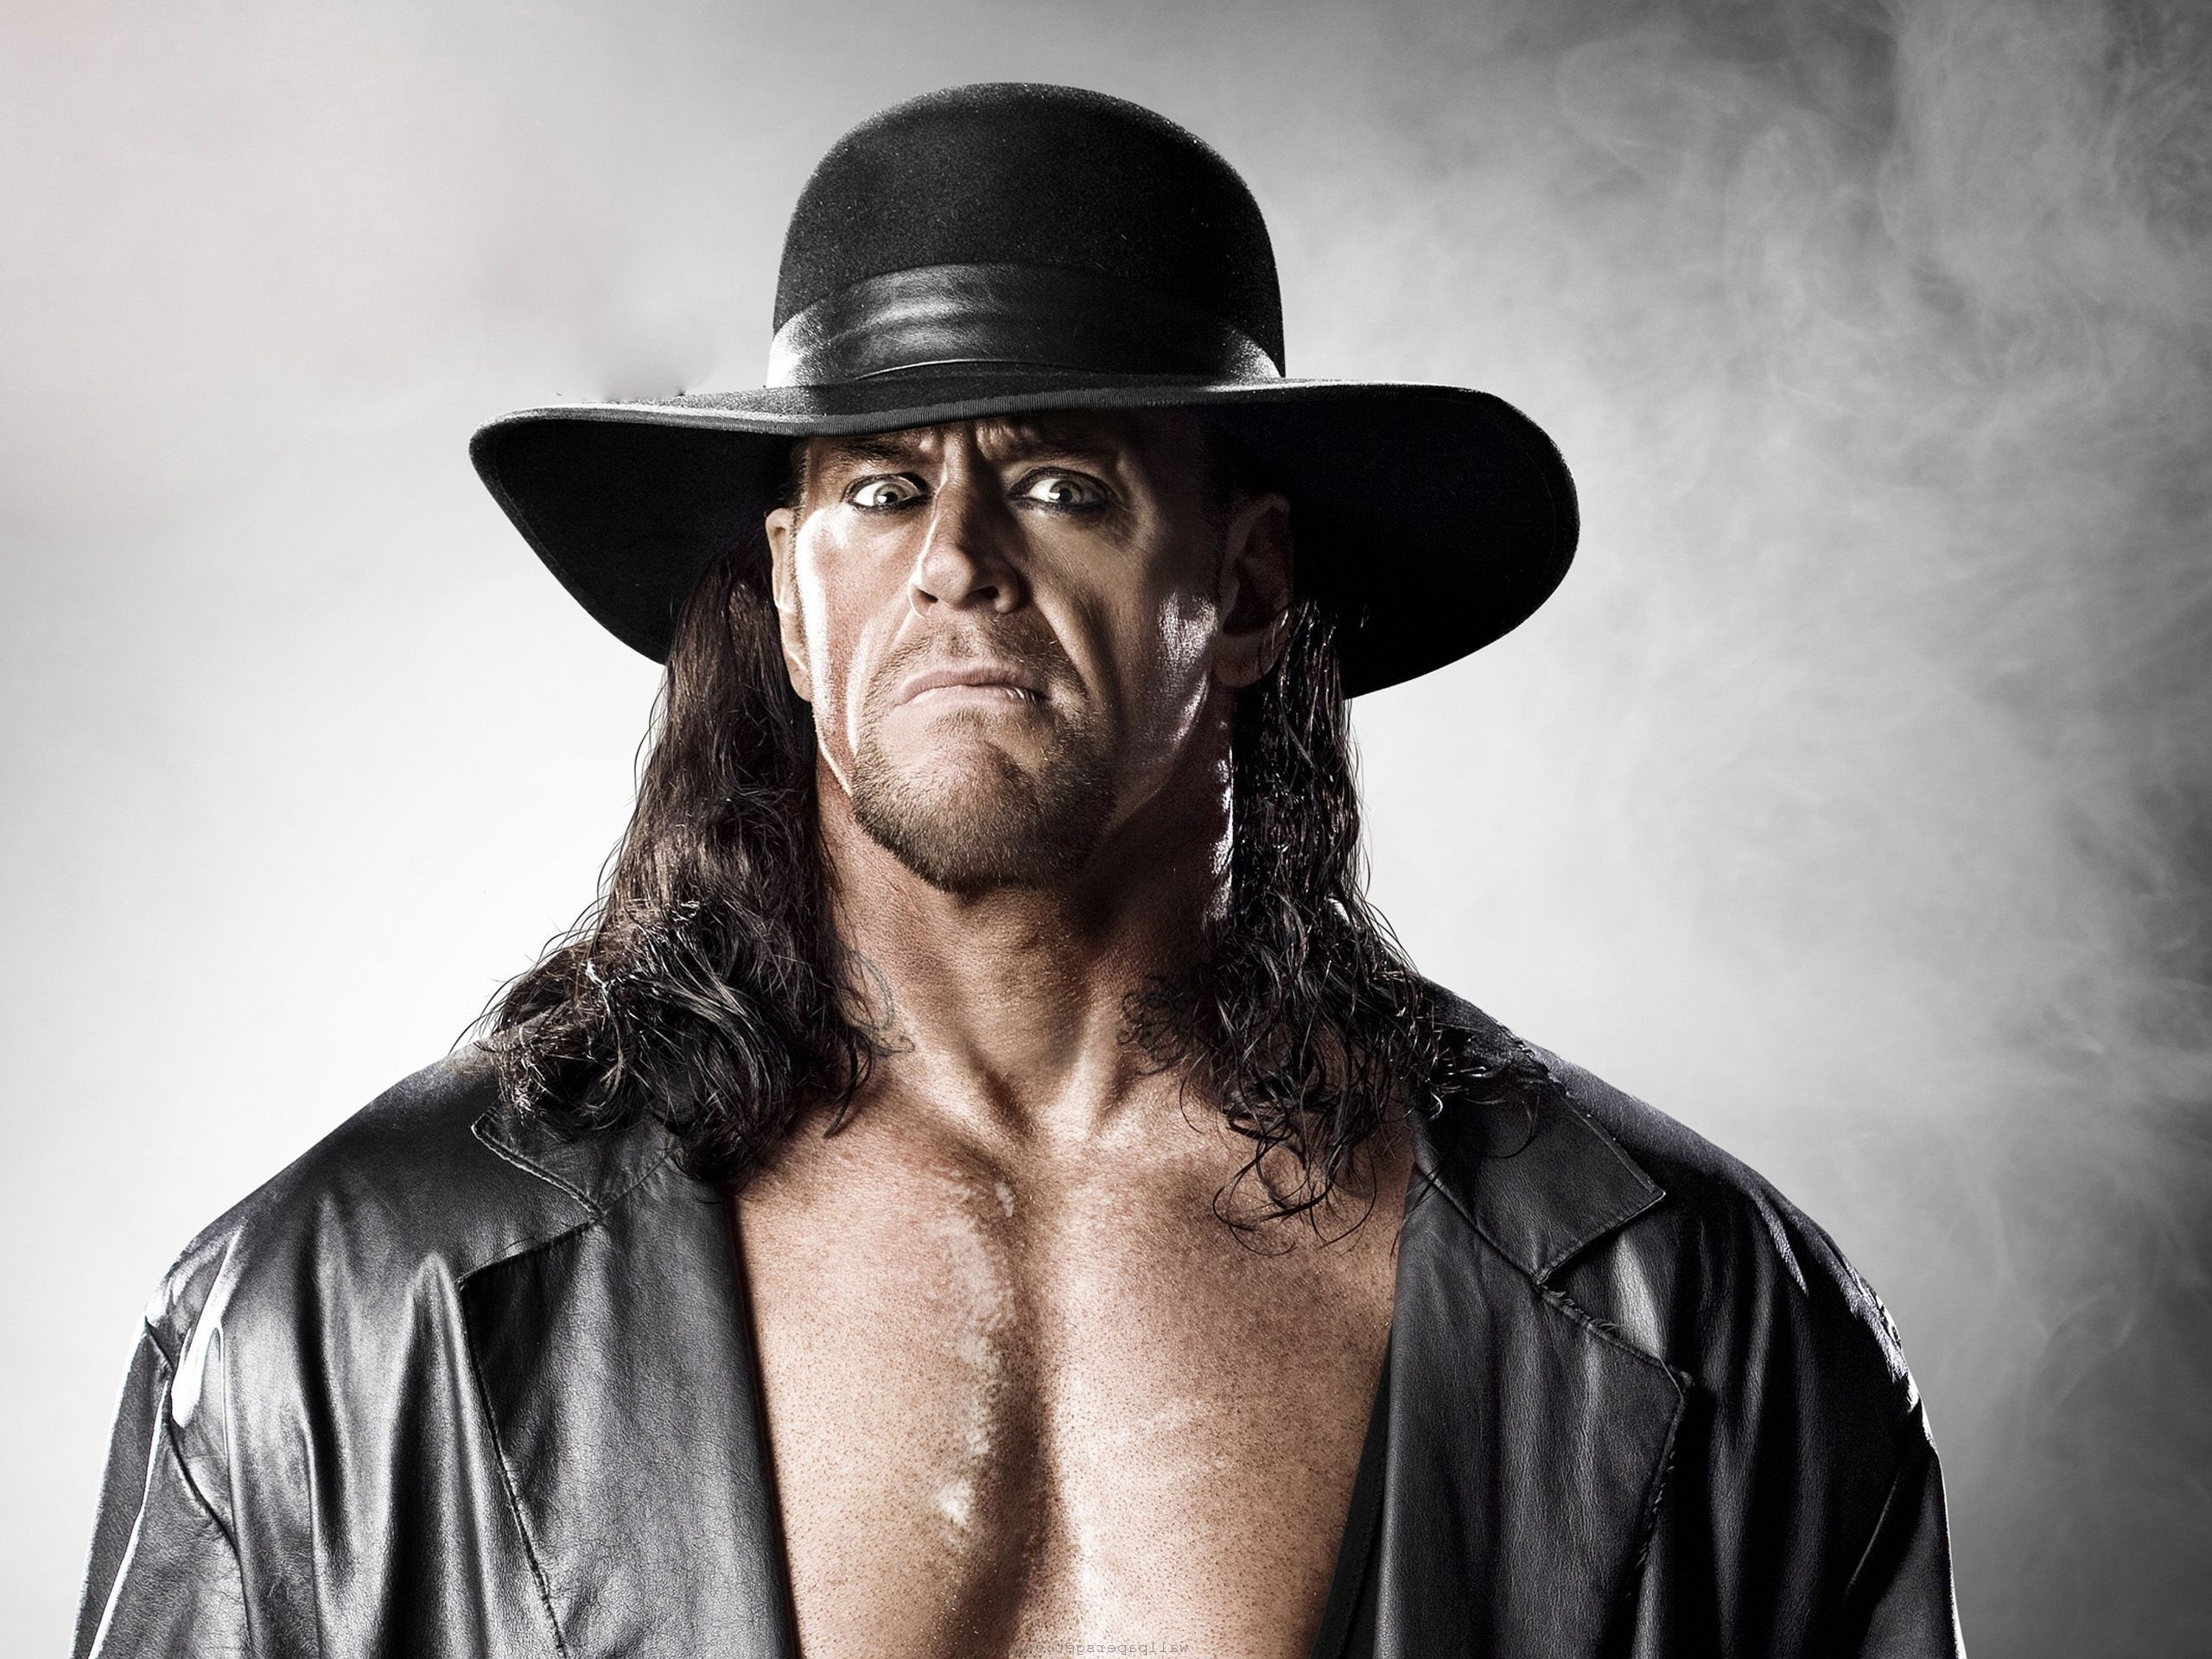 2560x1920 Check out Undertaker WWE Champion HD Photos And Undertaker HD Wallpapers in  widescreen resolution See WWE Superstar High Definition hd Images And The  ...